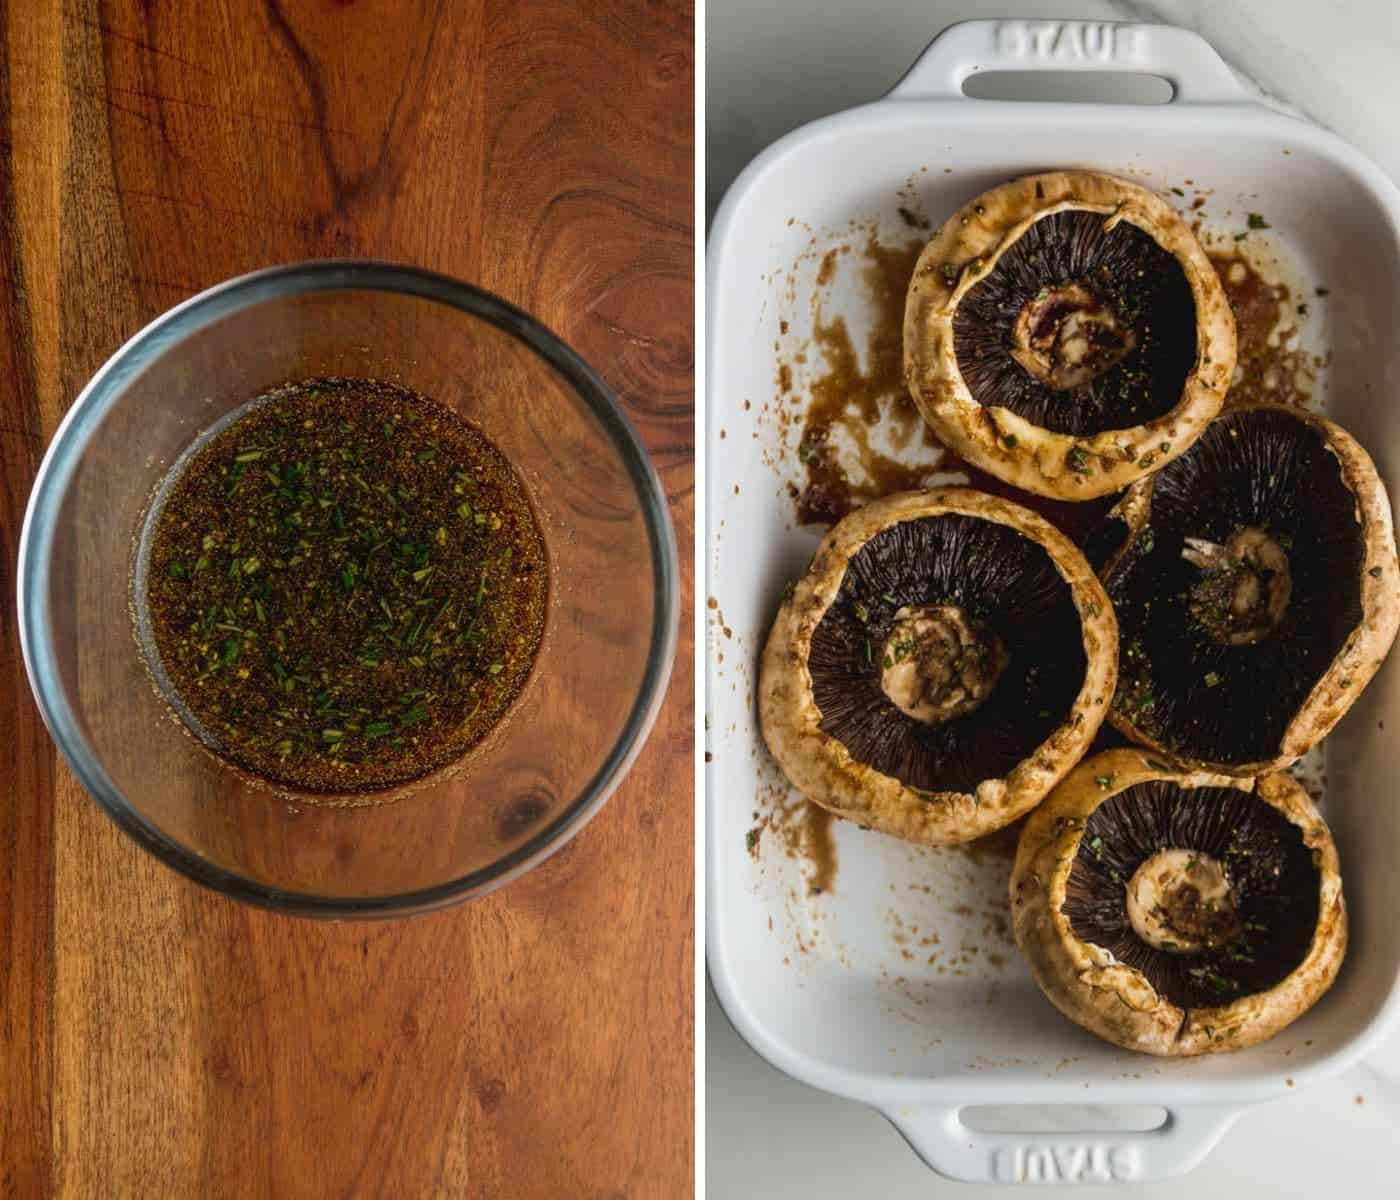 A collage of 2 images, the first one with the marinade in a small glass bowl, and the second one with the portobello mushrooms in a white dish marinating